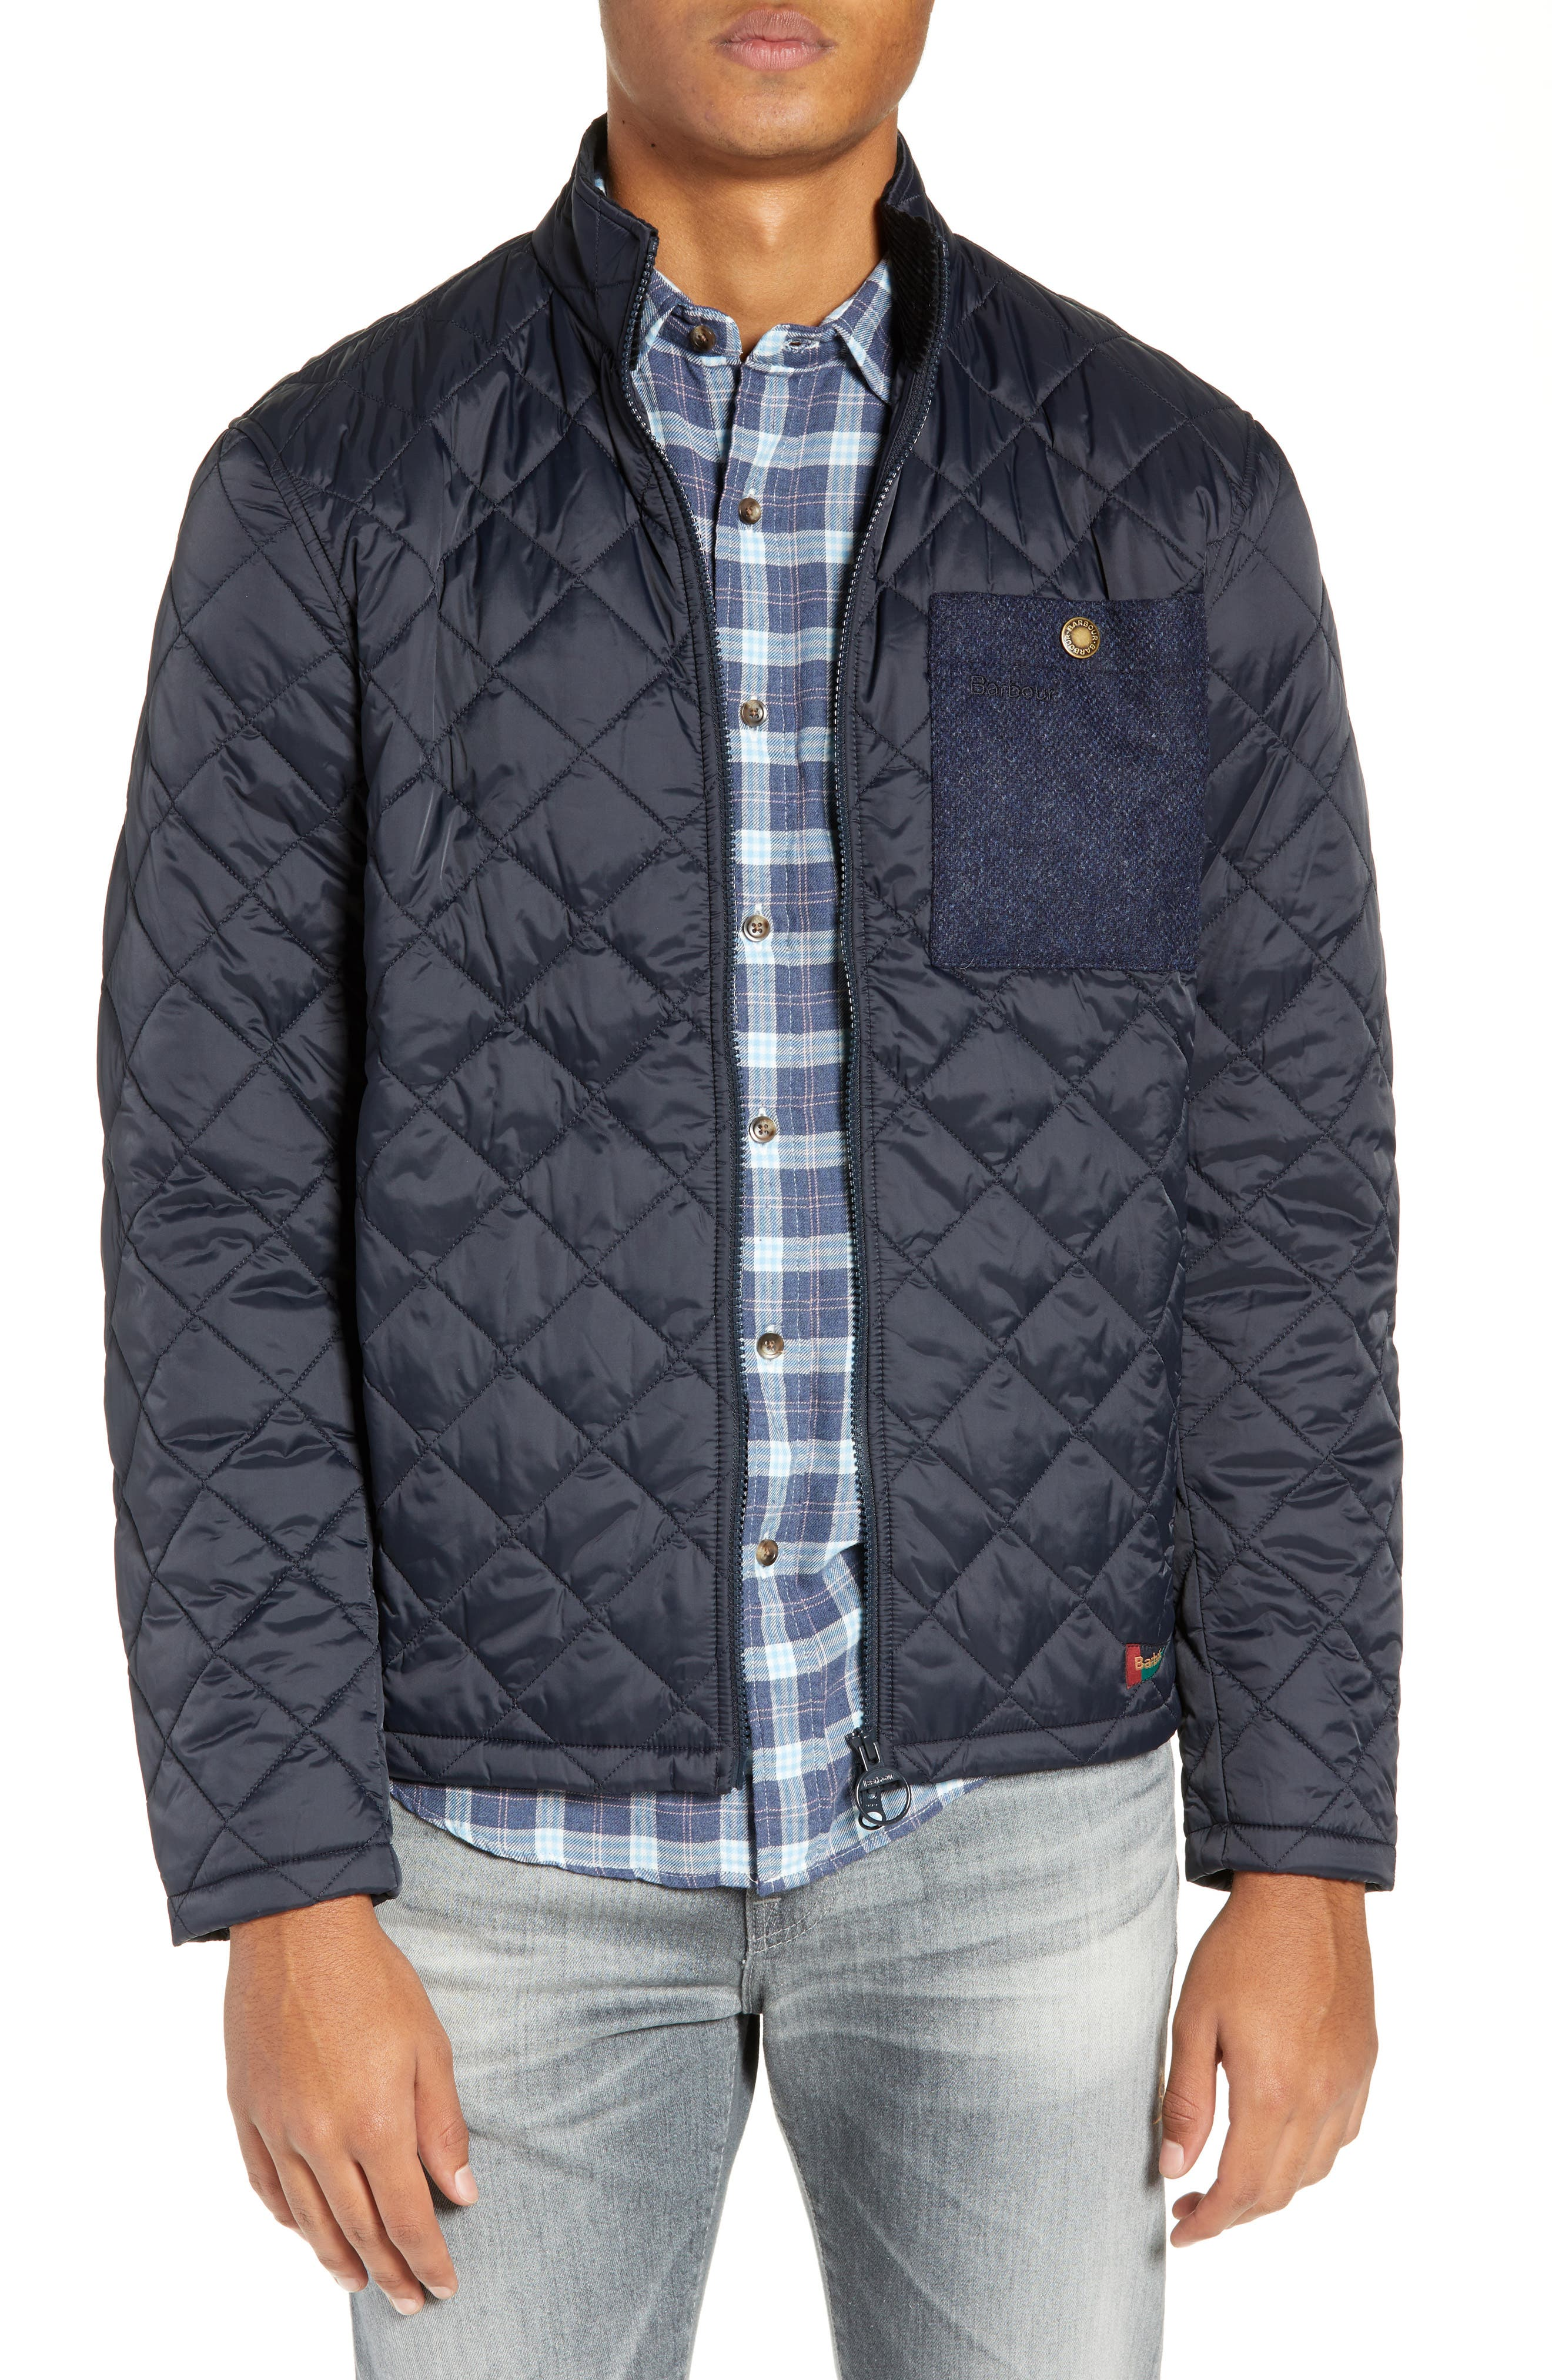 Barbout Abaft Quilted Jacket,                             Main thumbnail 1, color,                             NAVY